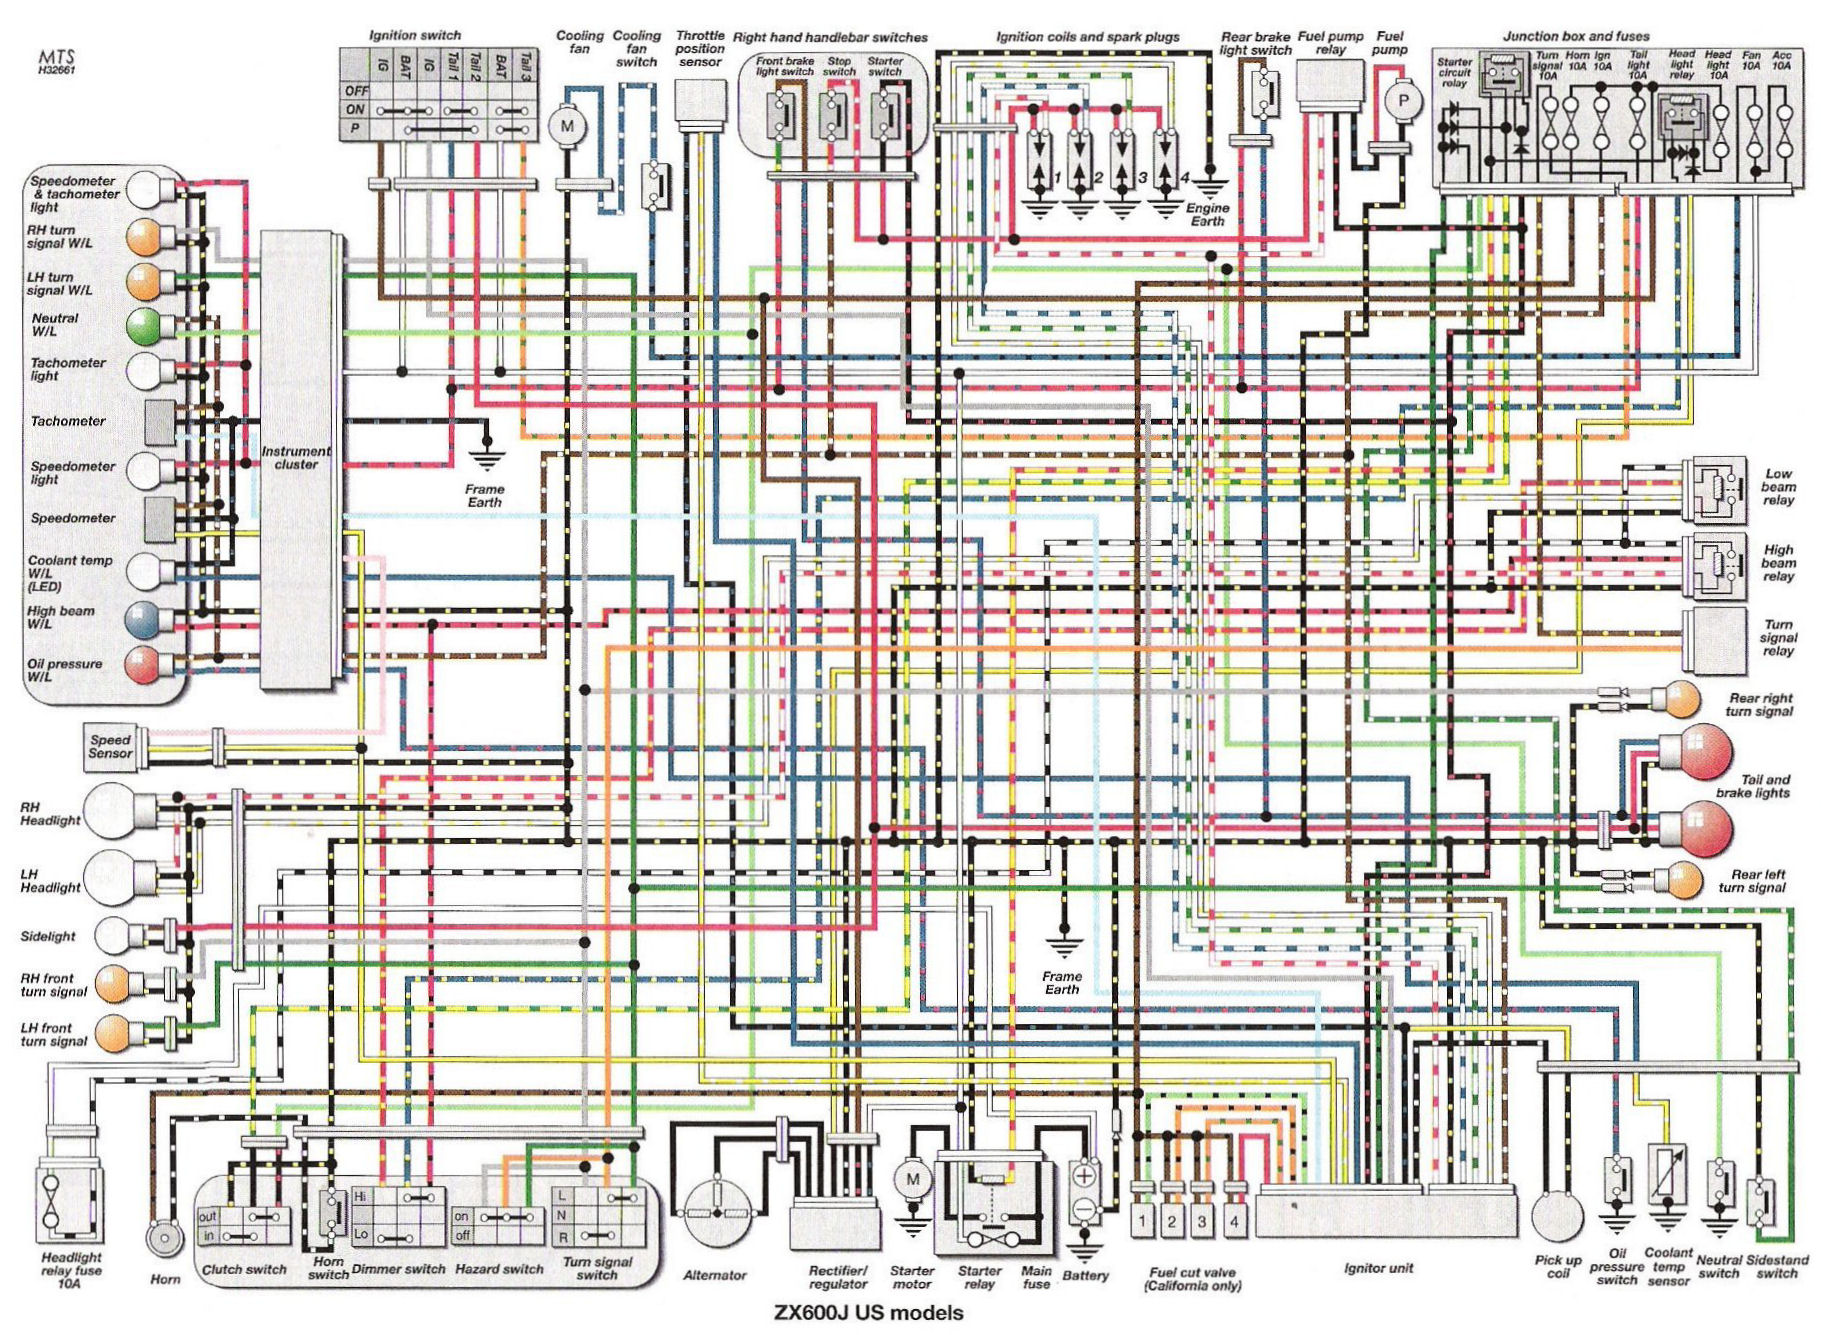 zx600j_us?zoom\=2.625\&resize\=665%2C488 fzr 1000 exup wiring diagram triumph daytona 675 wiring diagram 2001 yamaha r6 wiring diagram at suagrazia.org